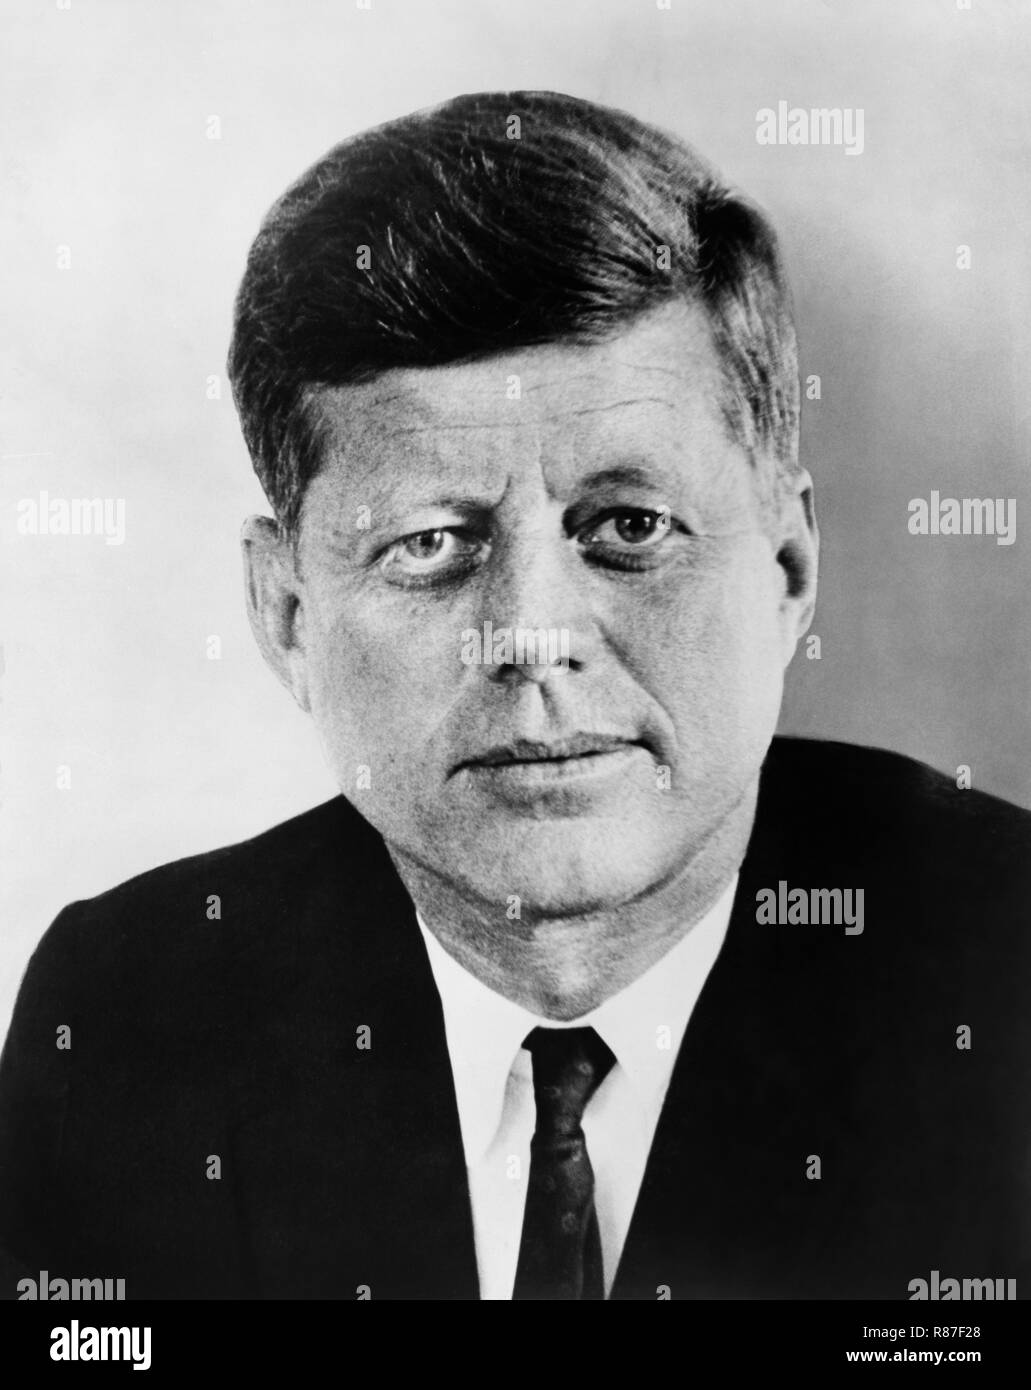 John Fitzgerald Kennedy (1917-63), 35th U.S. President, Head and Shoulders Portrait, 1961 - Stock Image